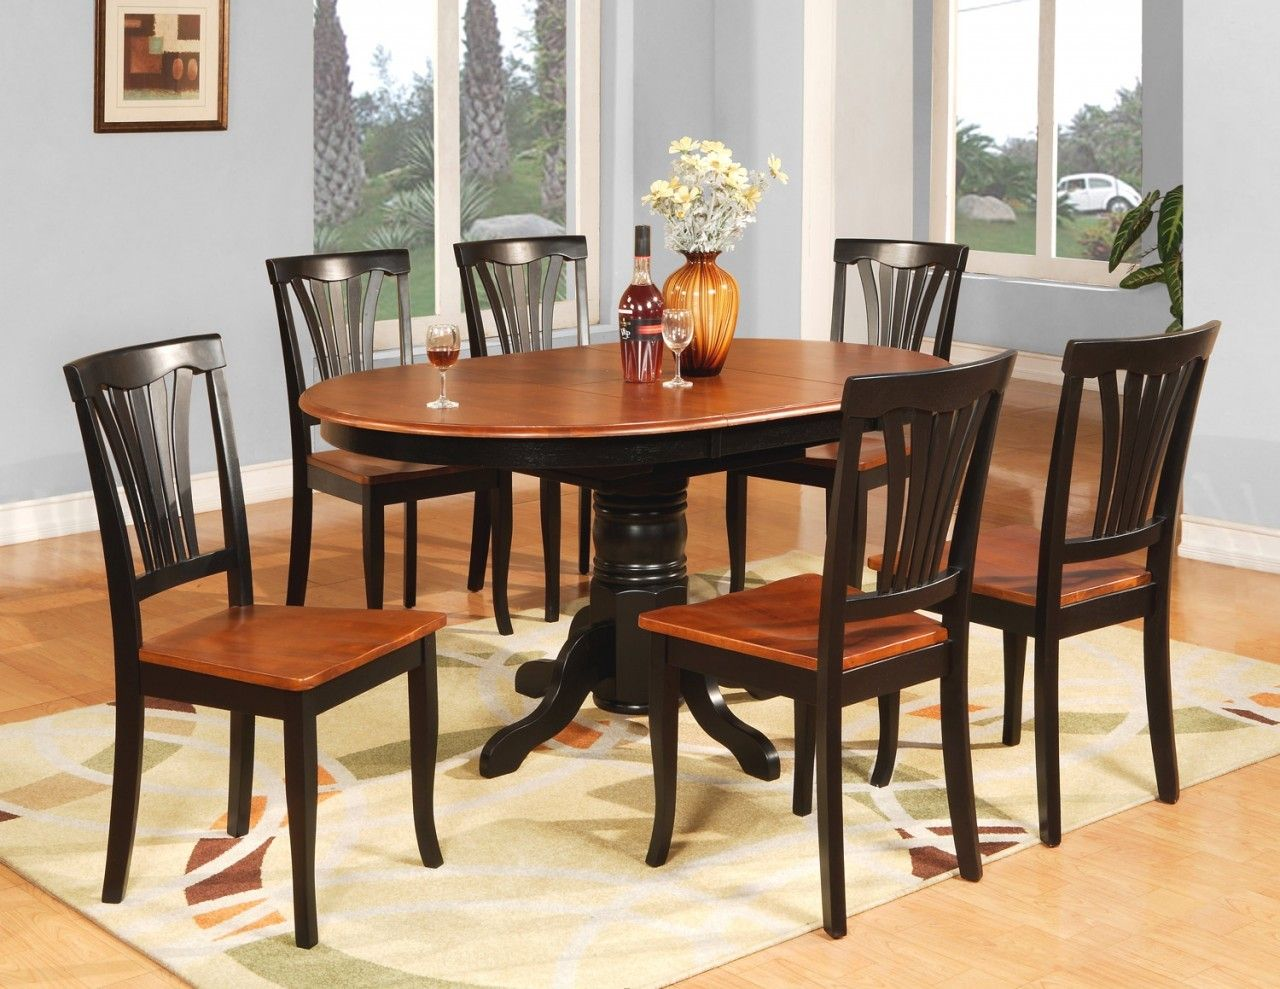 2 tone oval dining tables and chairs